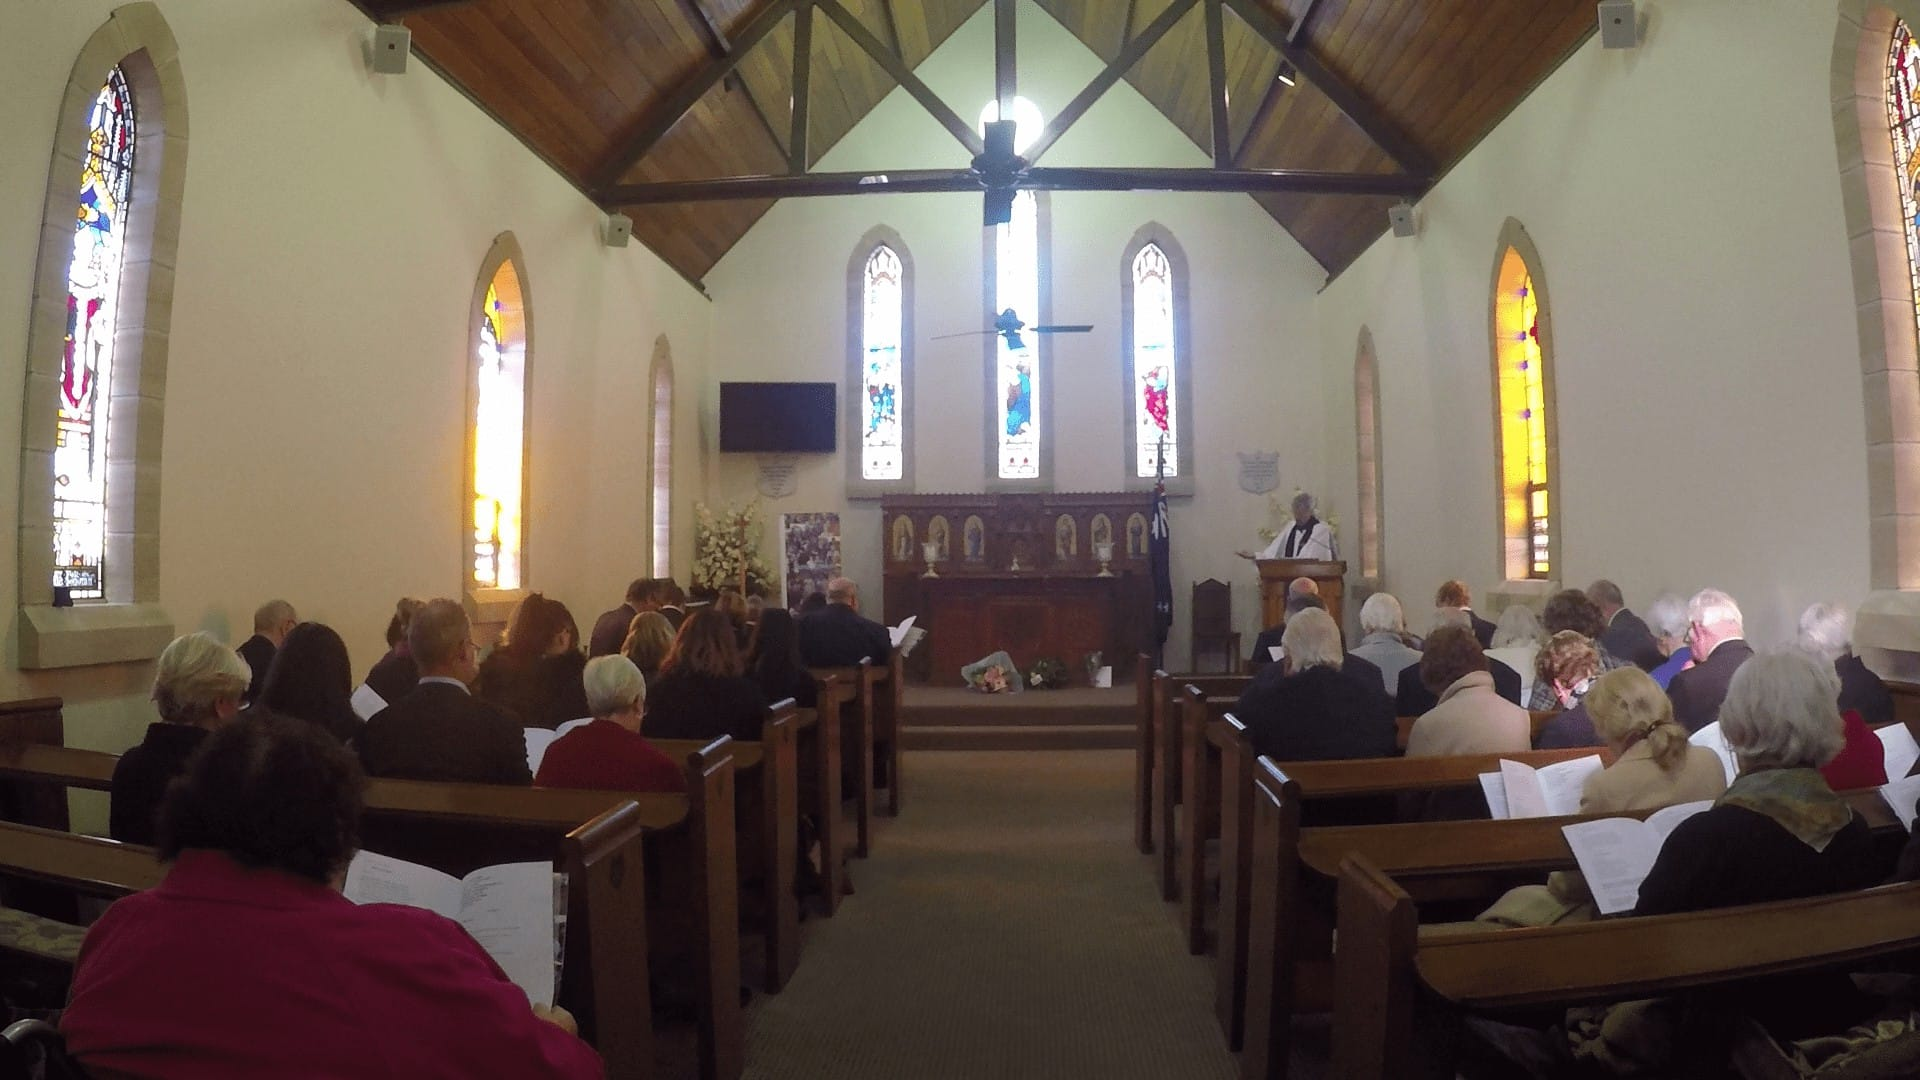 The Reverend Peter Rose, OAM, delivers the service with the commital of Irene's ashes at the Memorial for Irene Simkin on June 2, 2017